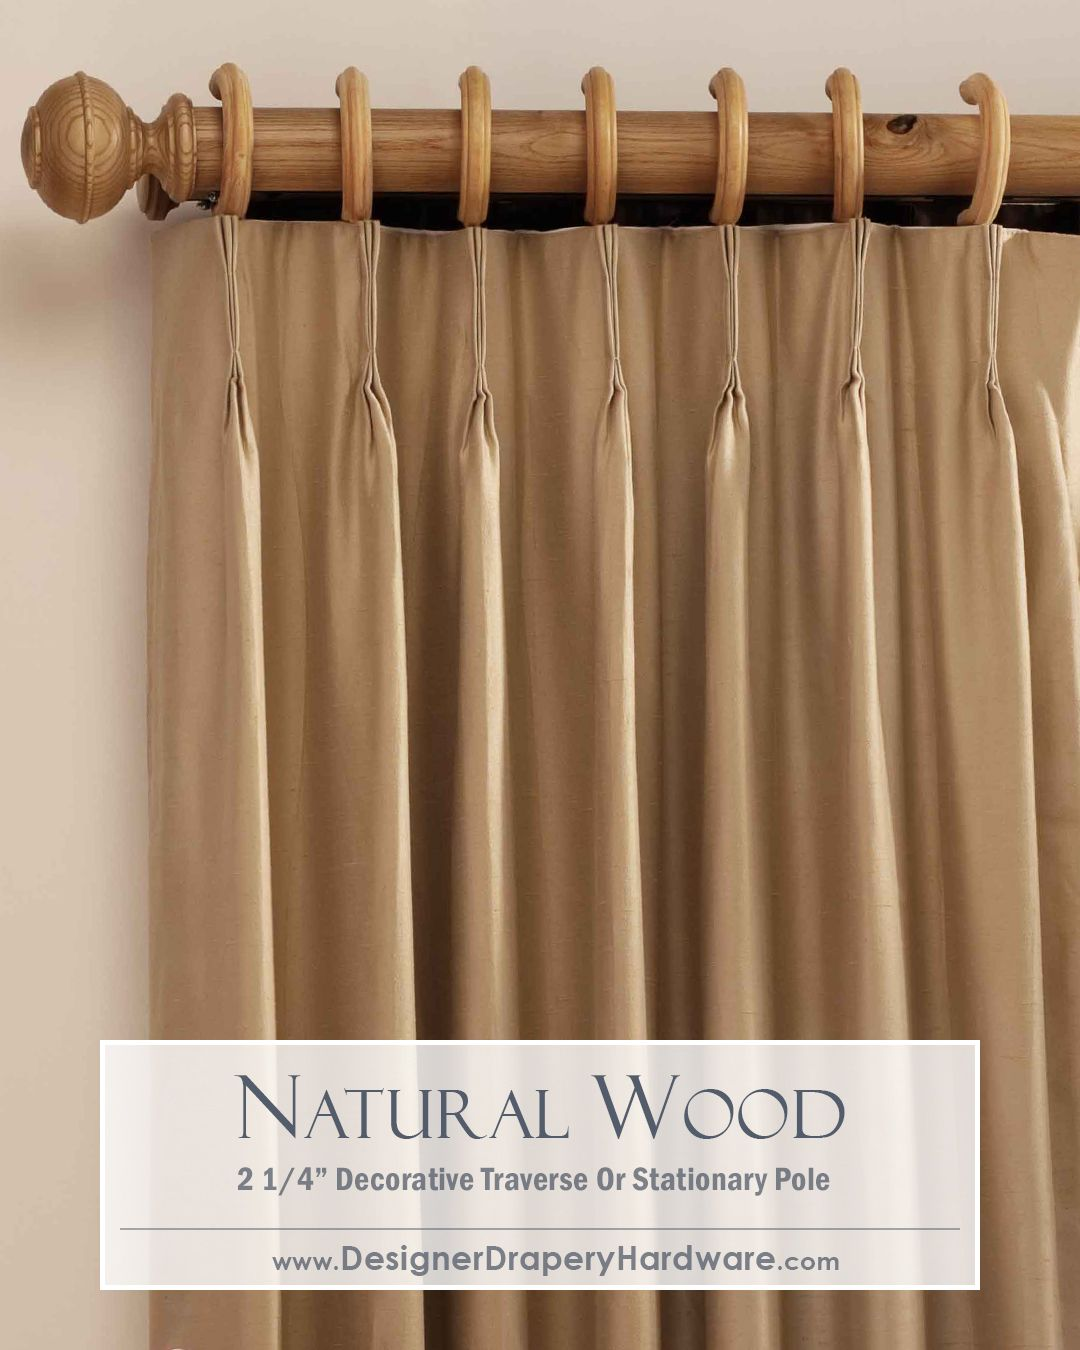 Youll Really See The Beautiful Wood Grain In These Natural Curtain Rods They